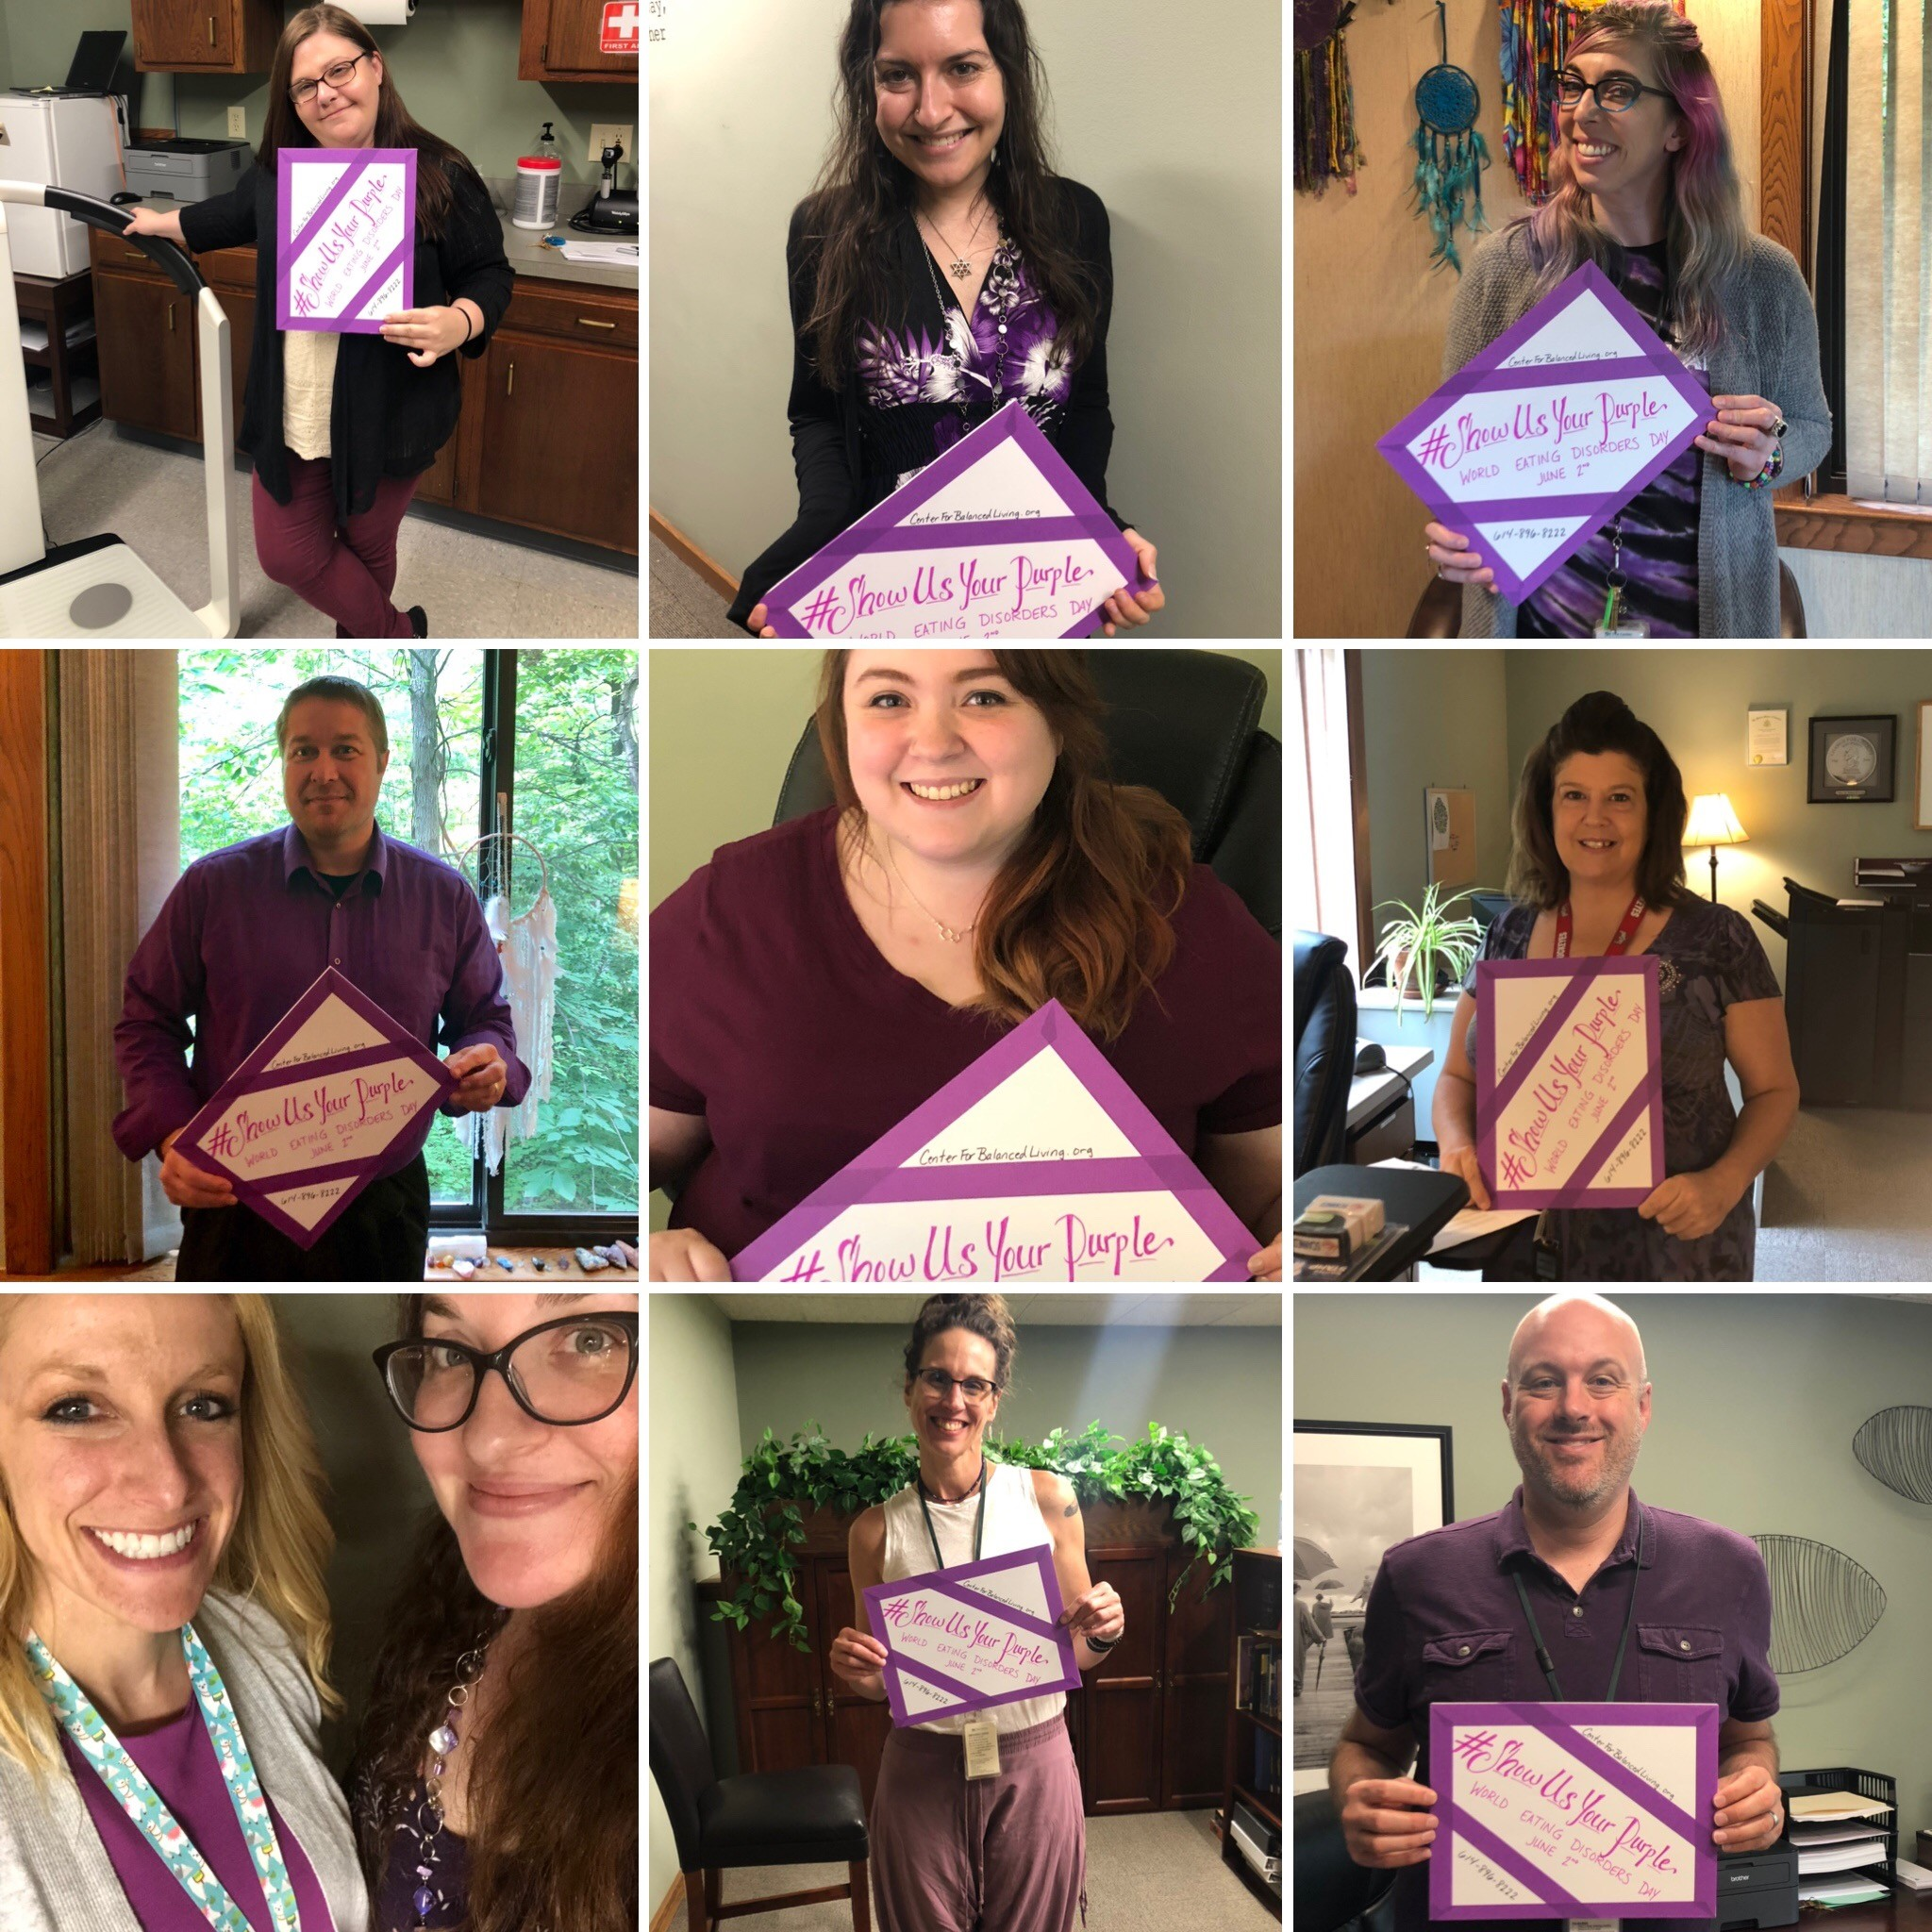 June 2nd was World Eating Disorders Day - Thank you to The Center's Staff for helping spread eating disorder awareness!#WorldEatingDisordersDay #ShowUsYourPurple